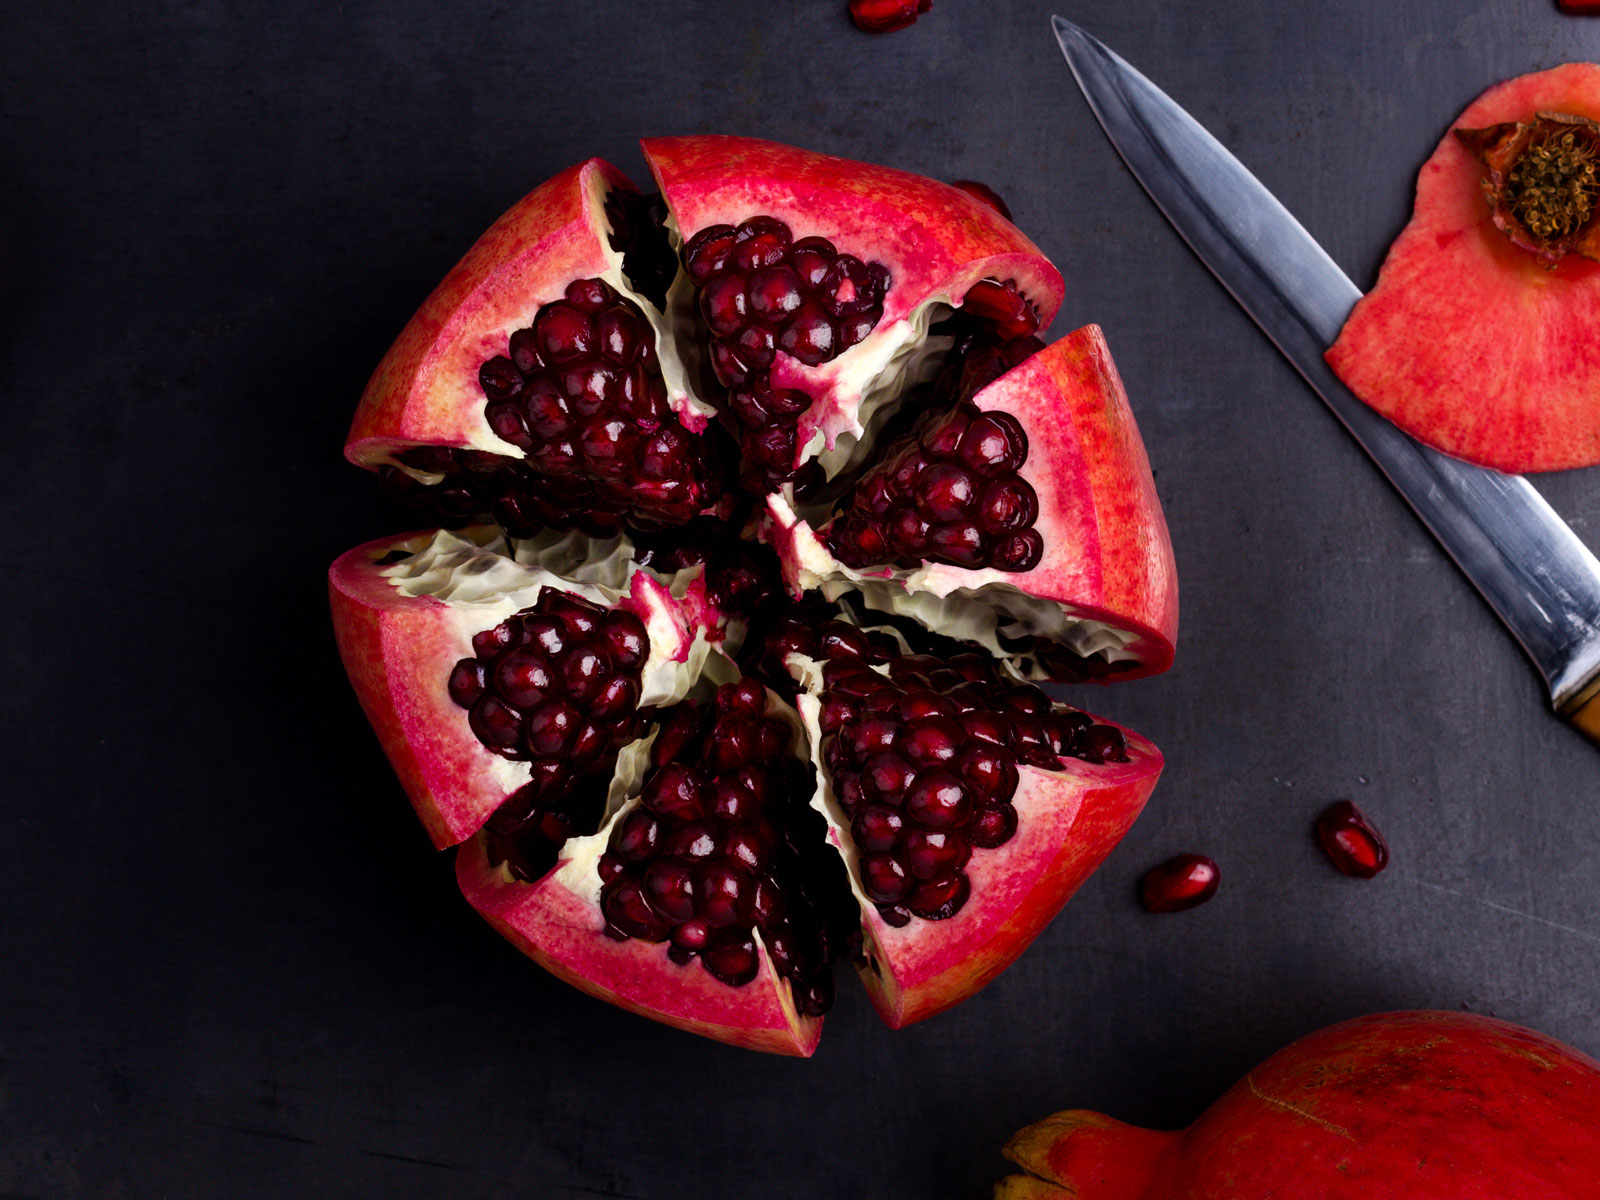 How to Cut Open a Pomegranate Without Making a Mess